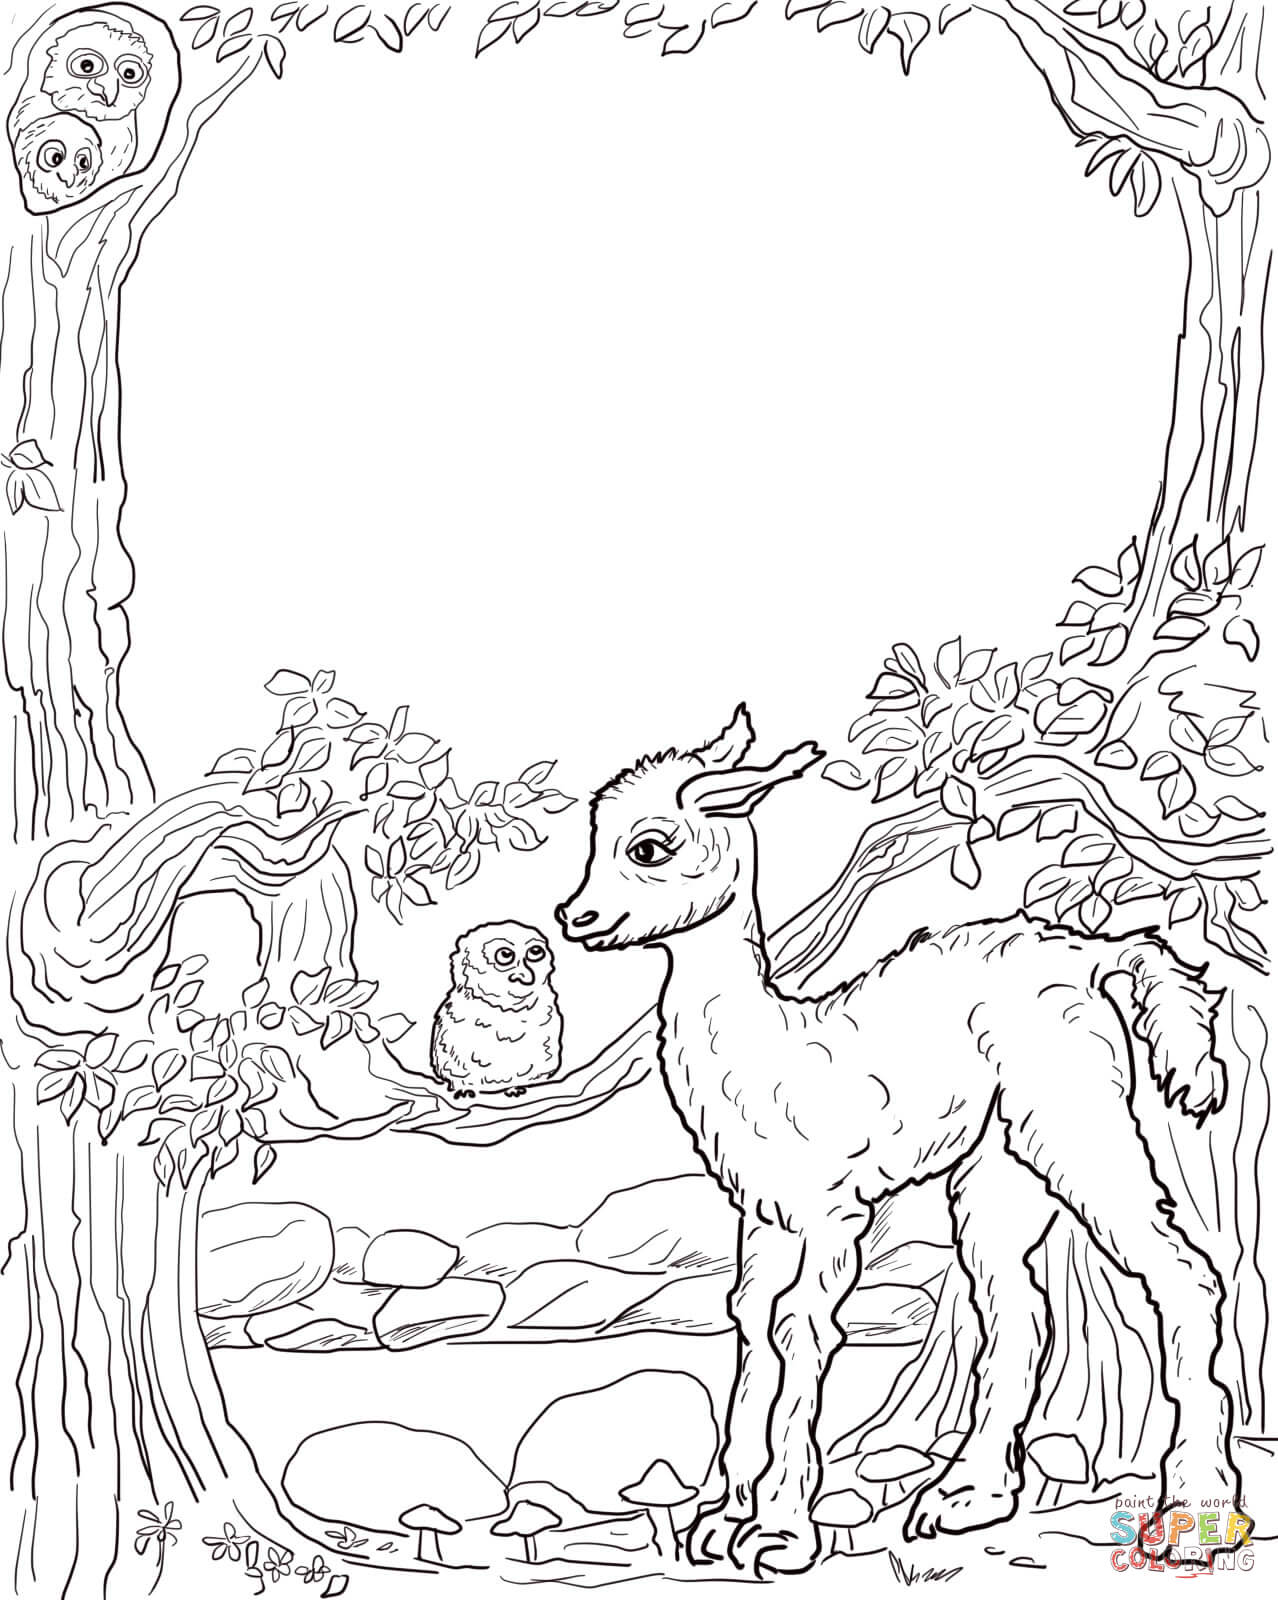 Is Your Mama A Llama Coloring Page